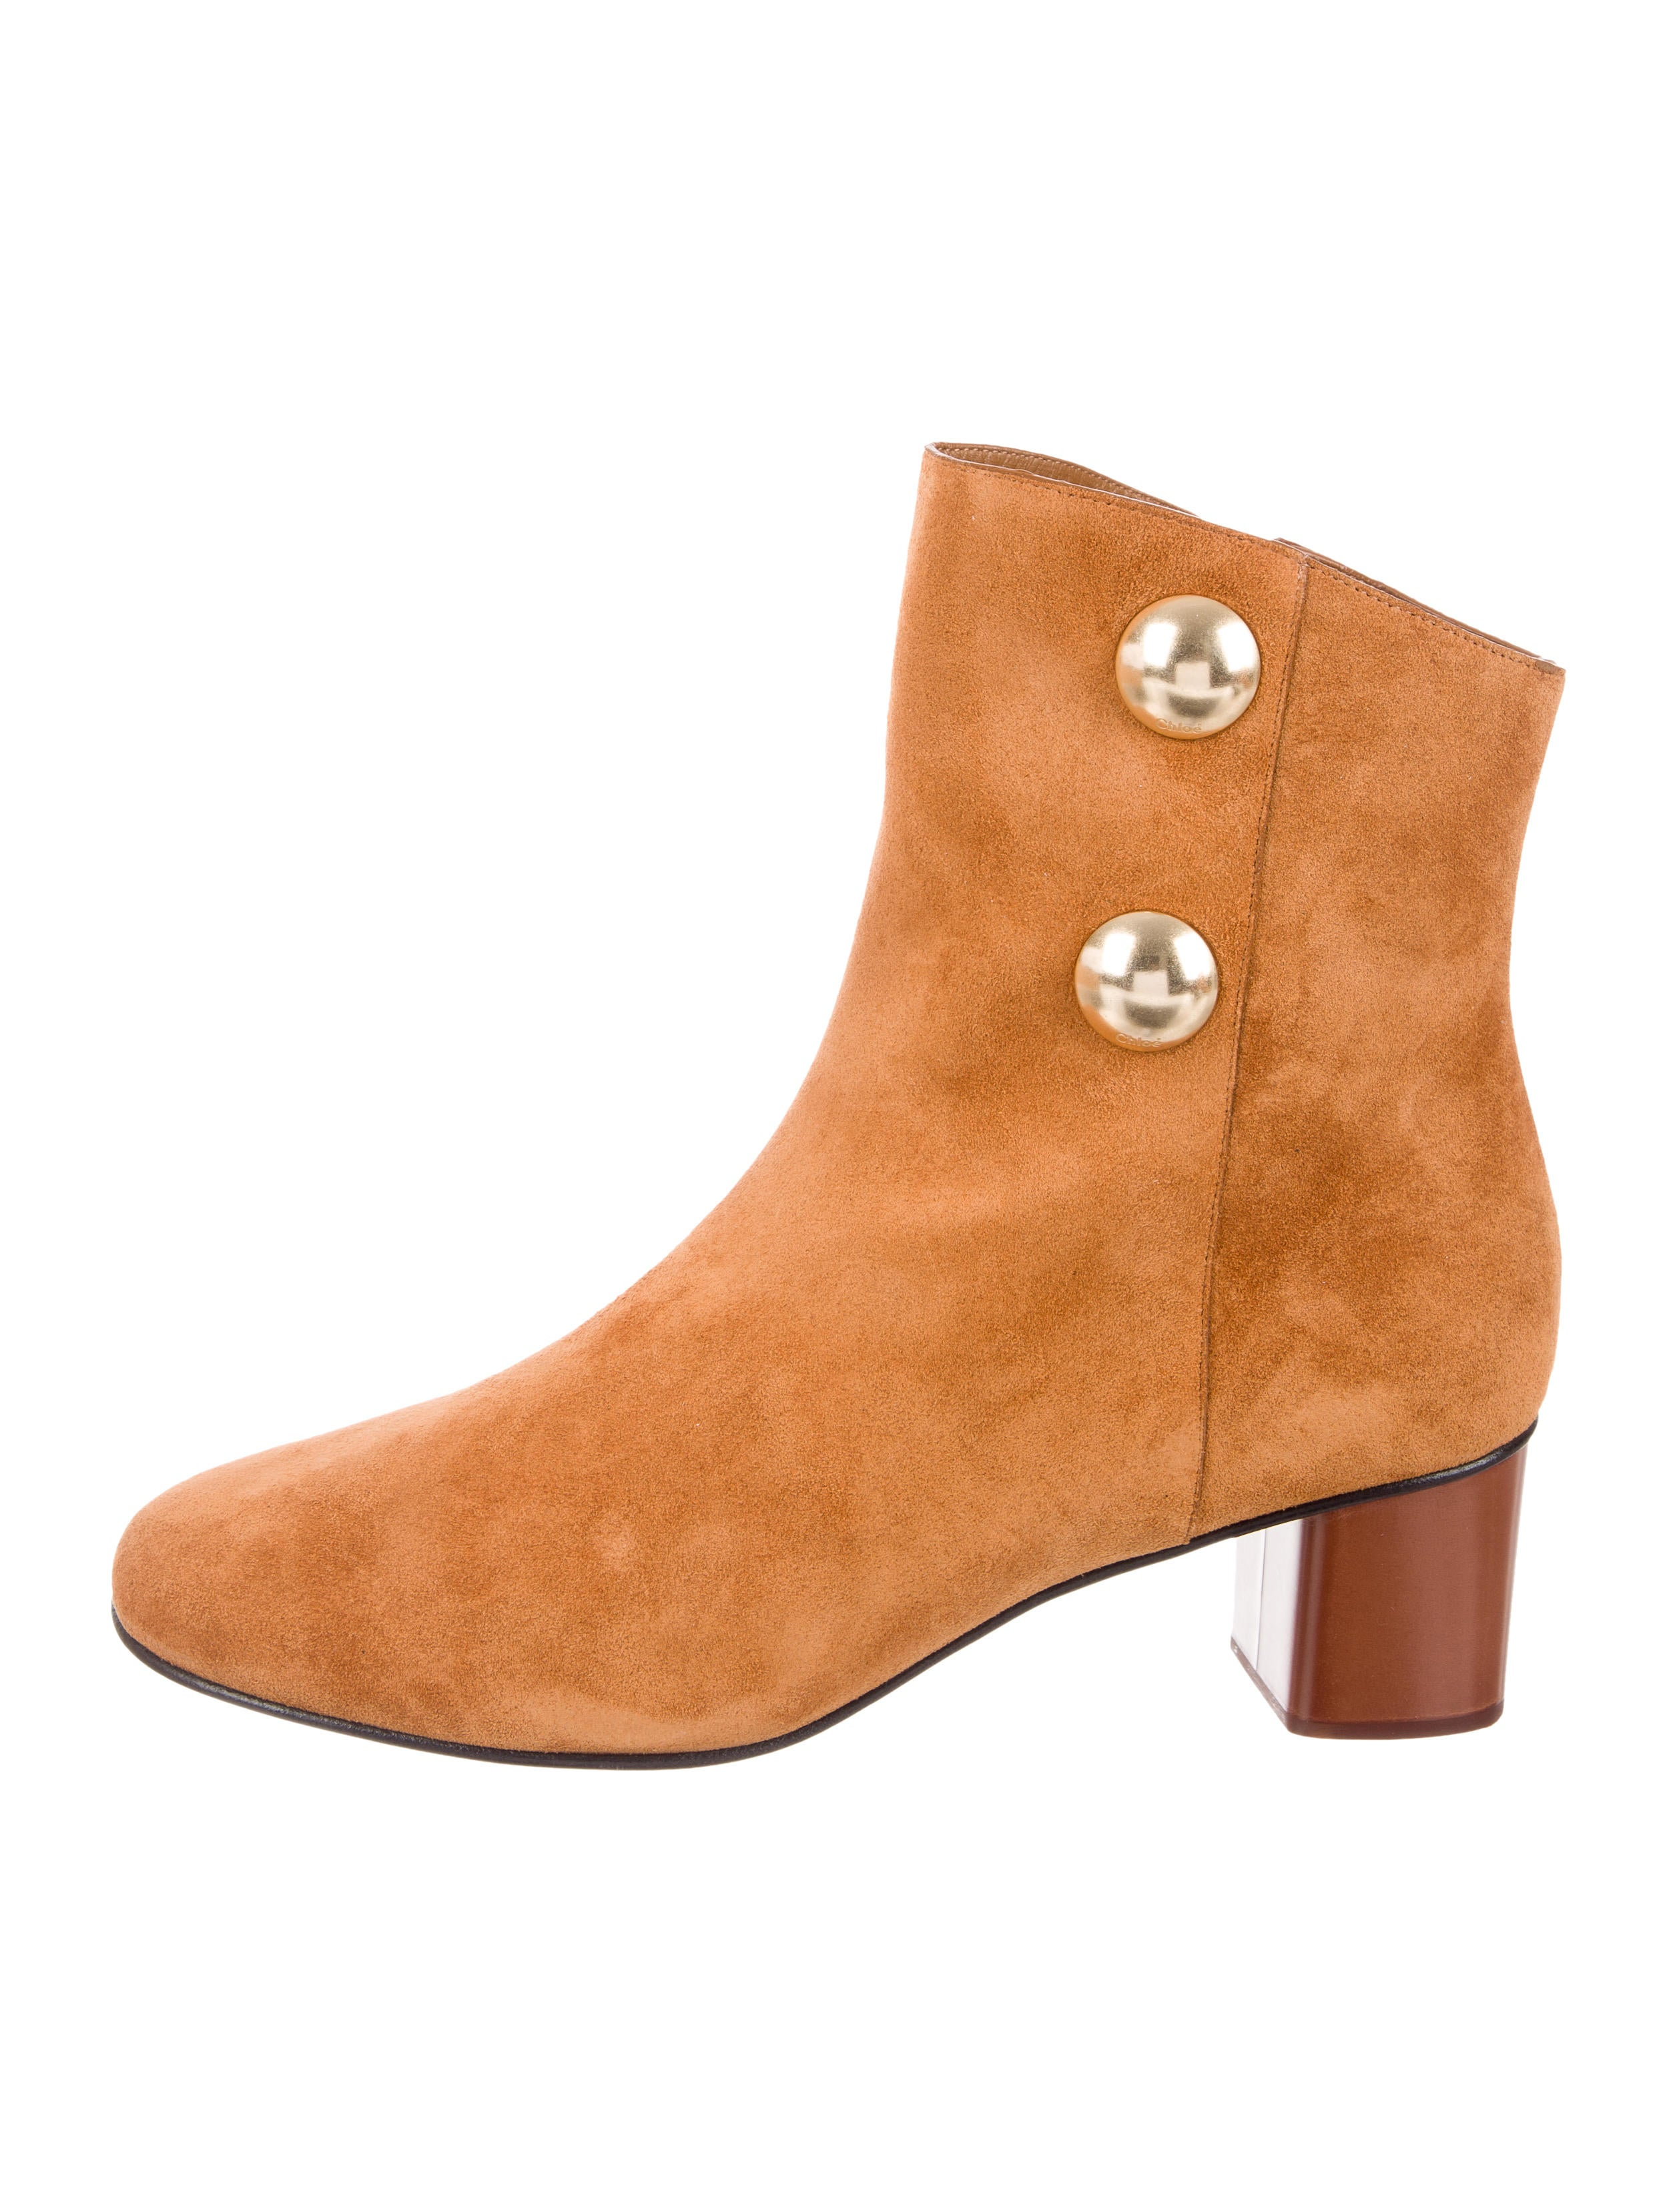 Chloé Suede Chelsea Boots w/ Tags how much online fake cheap price free shipping cheap online affordable sale online outlet release dates TKAhFyG